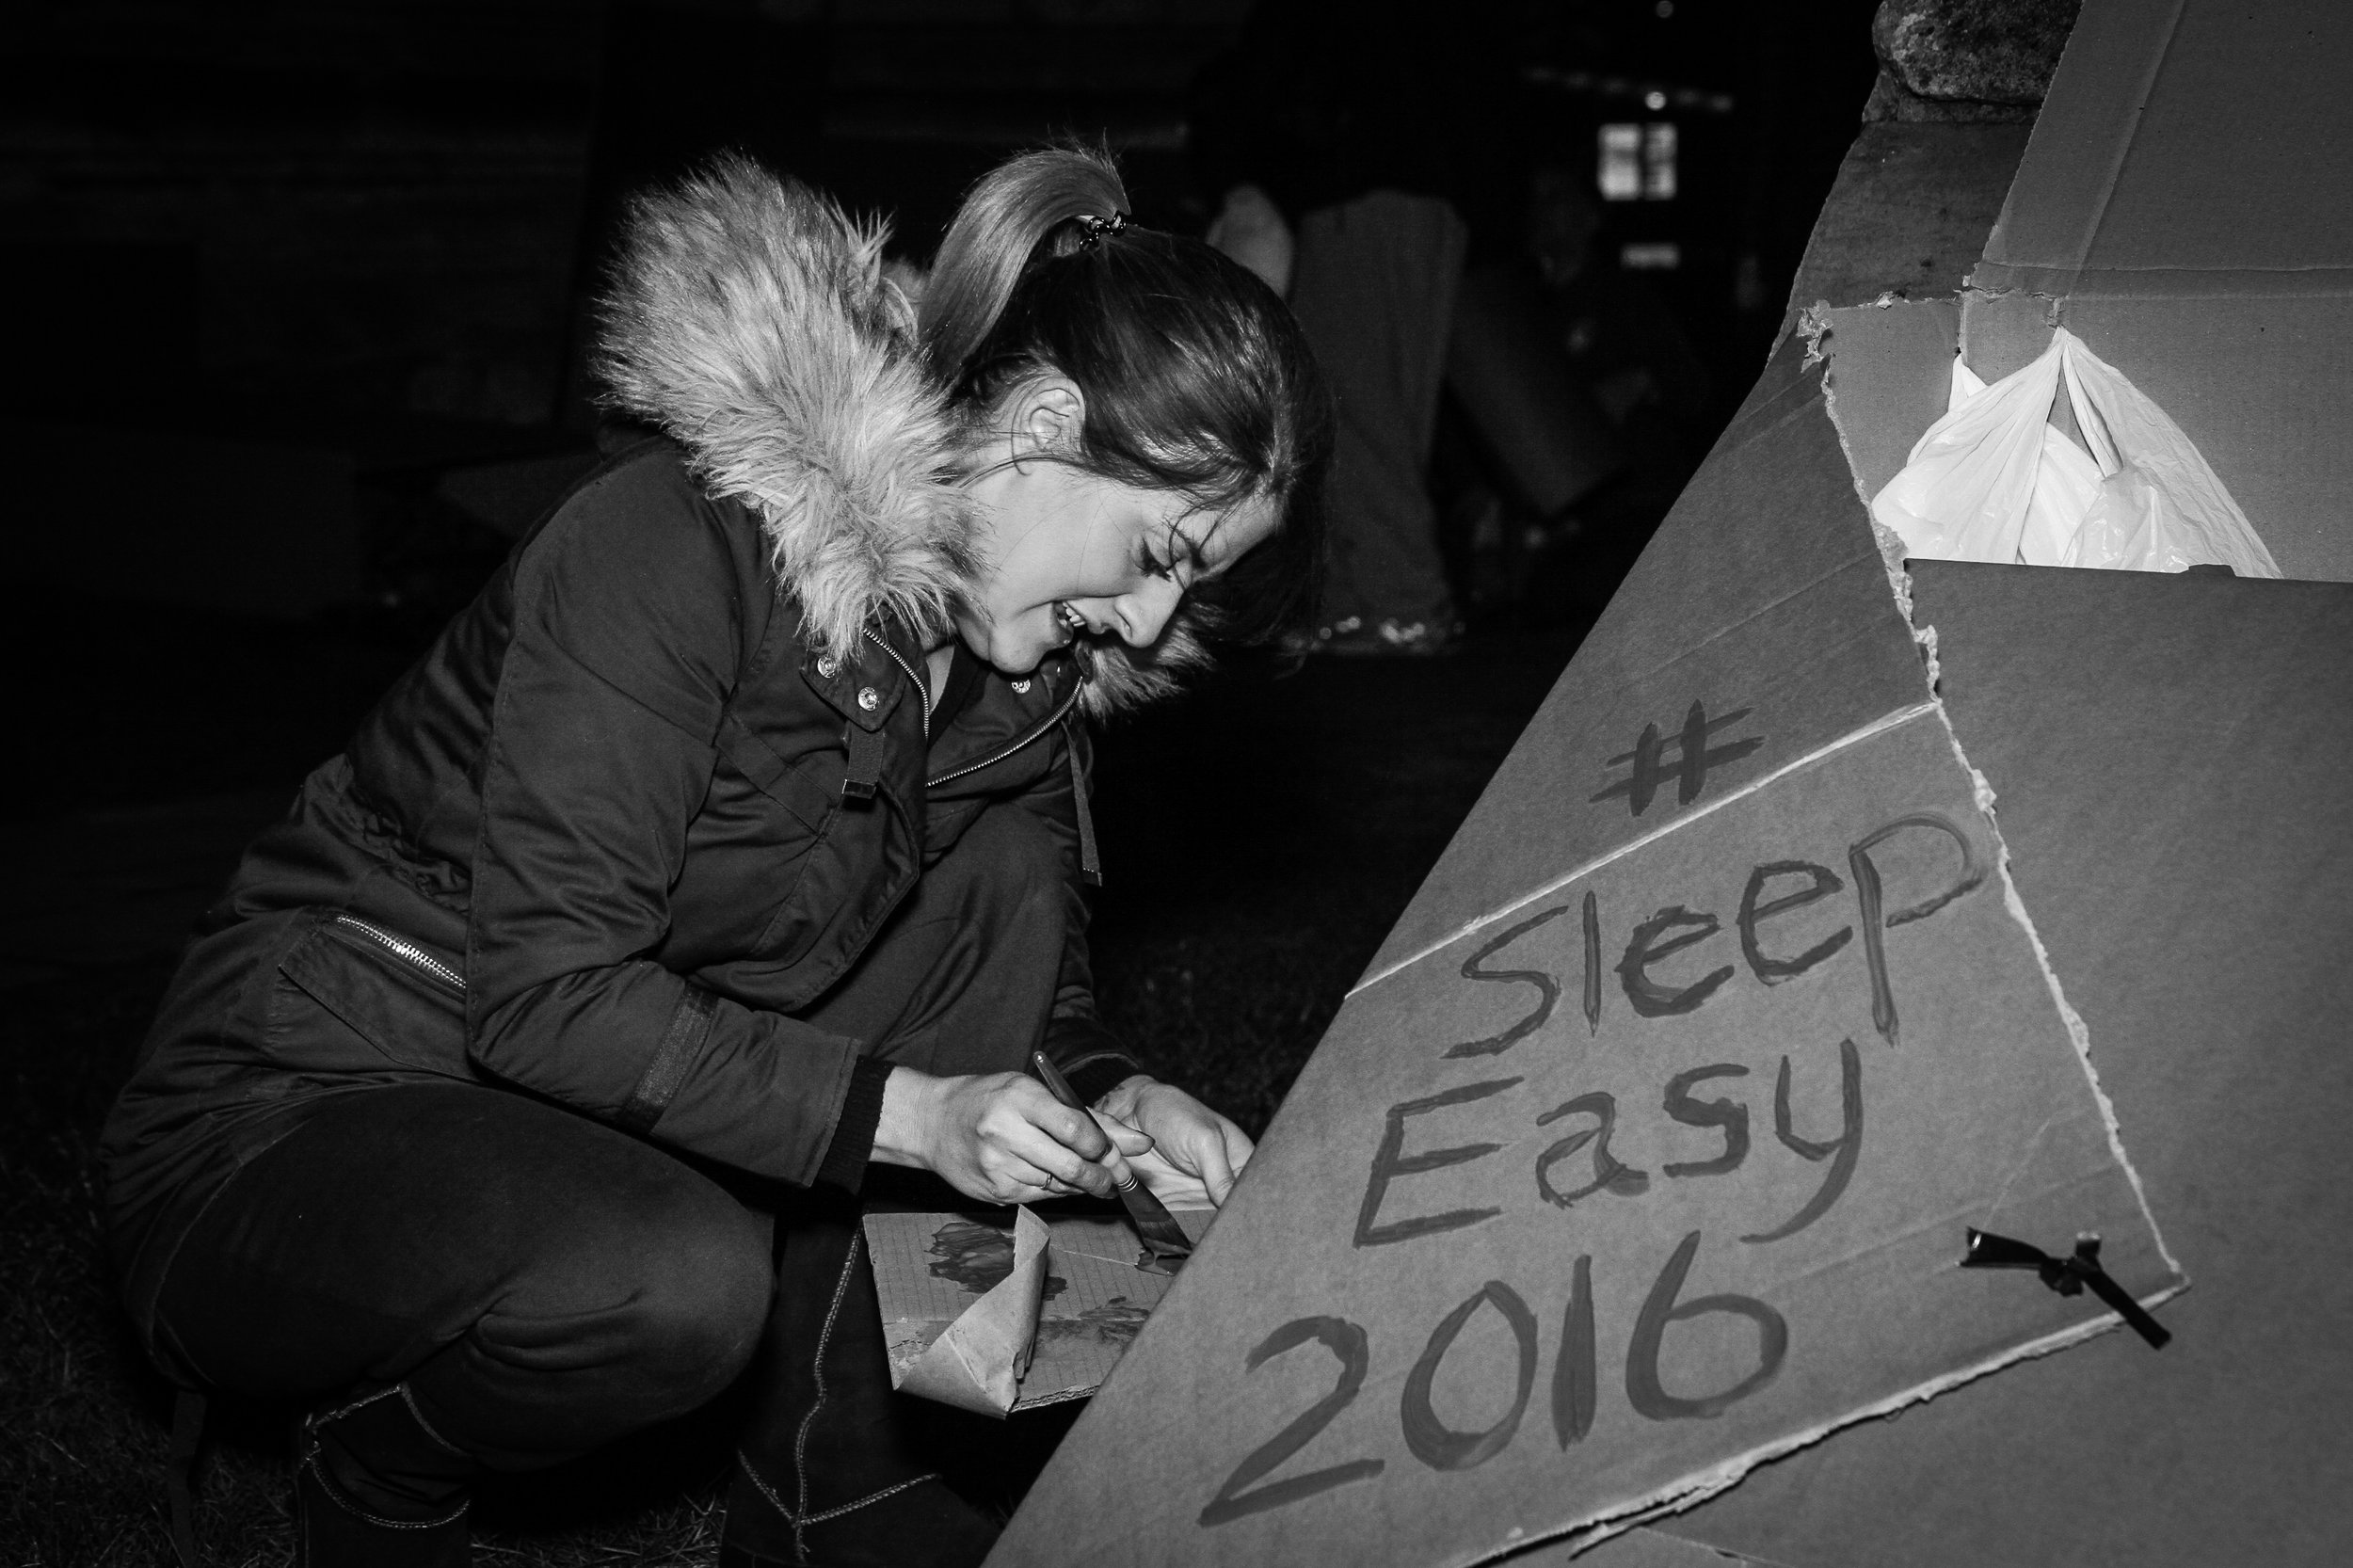 Live coverage of the SleepEasy event